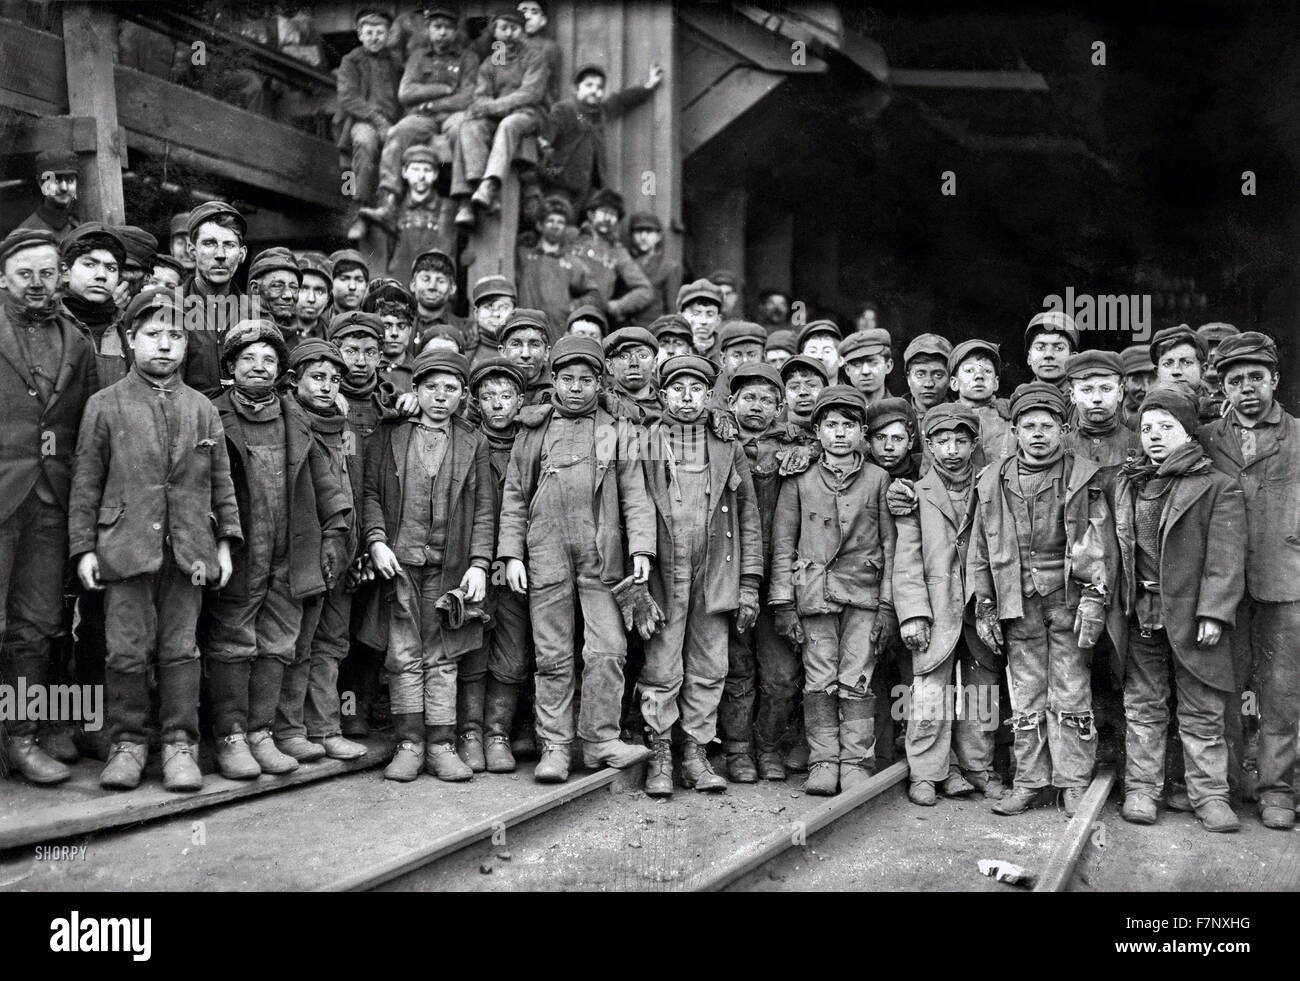 history of child labour This paper examines the influence of adult market wages and having parents  who were child labourers on child labour, when this decision is jointly determined .